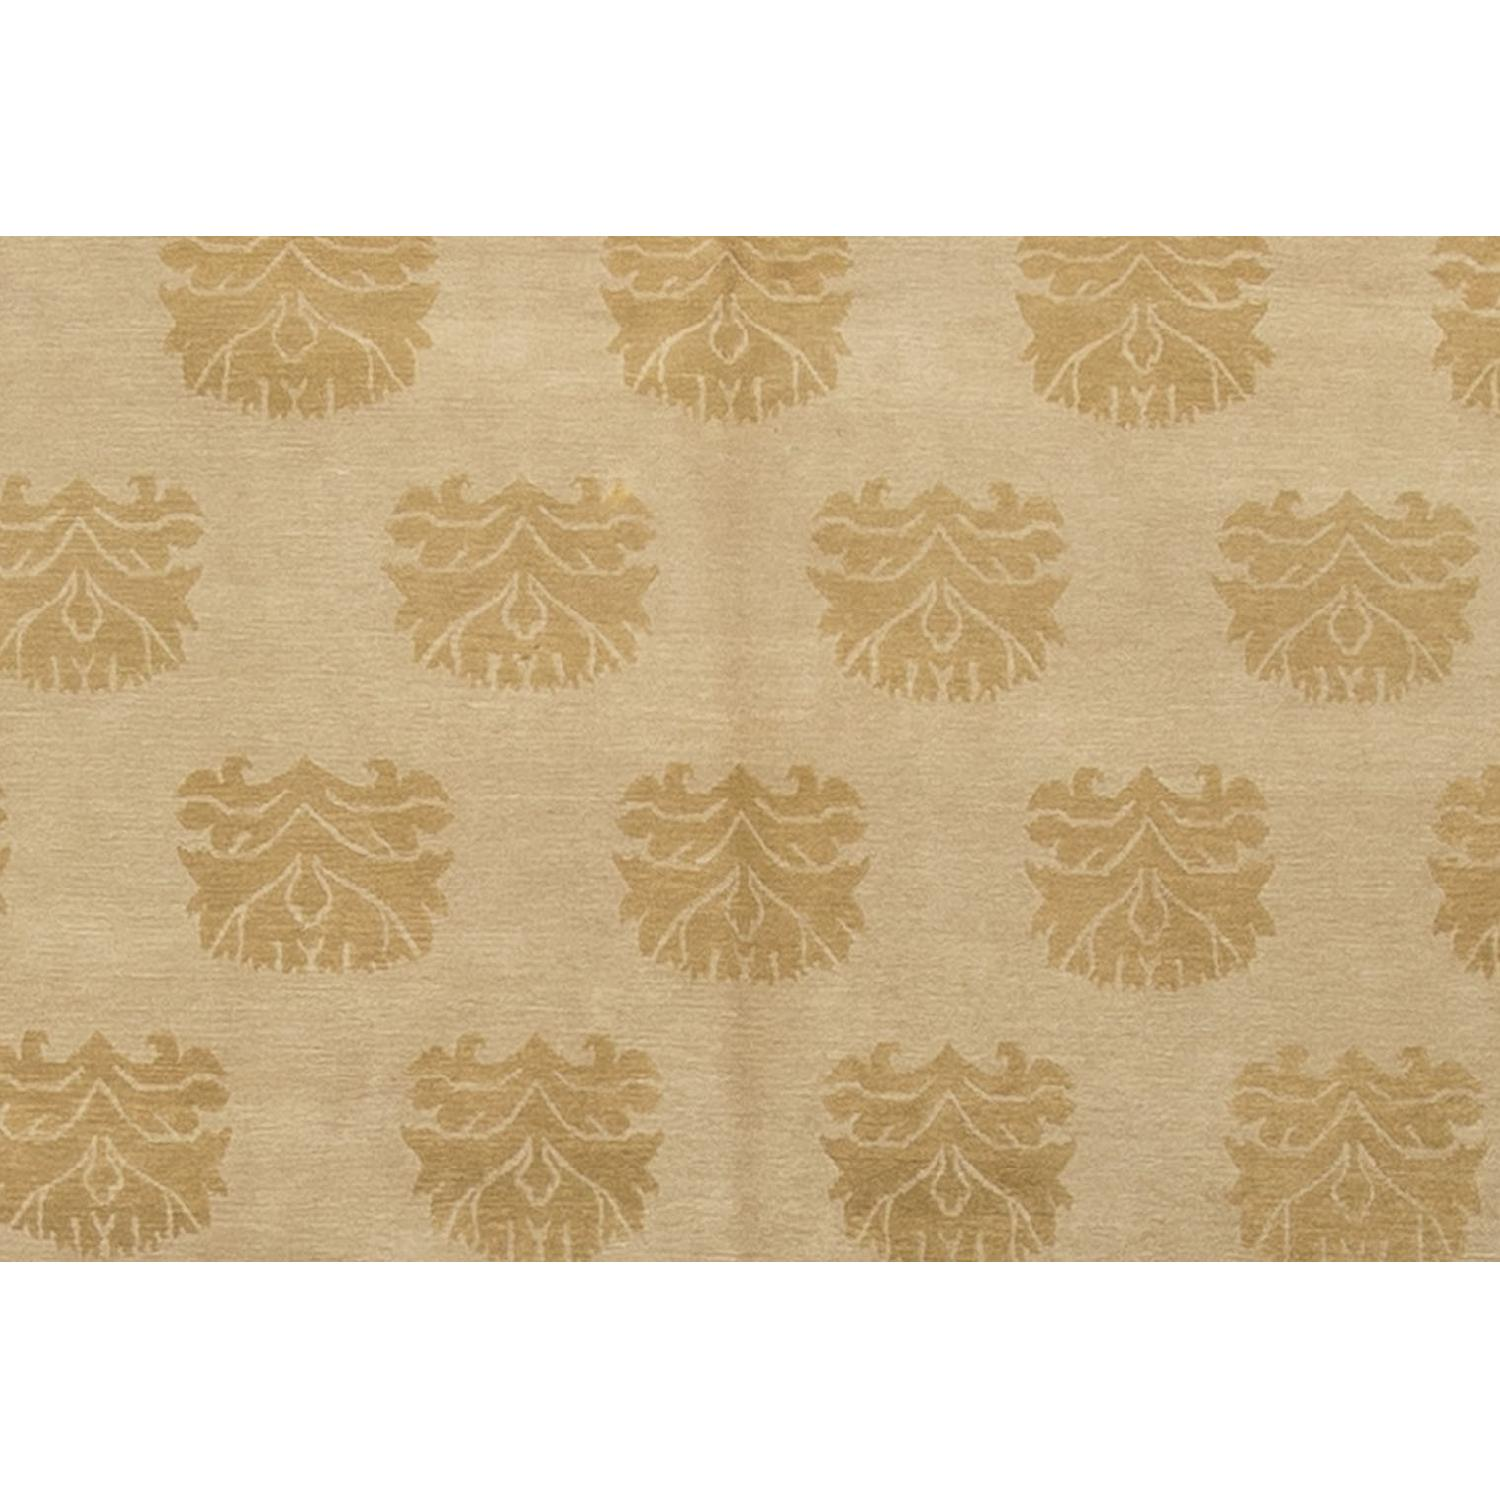 Modern Contemporary Hand Knotted Wool Rug in Beige - image-2